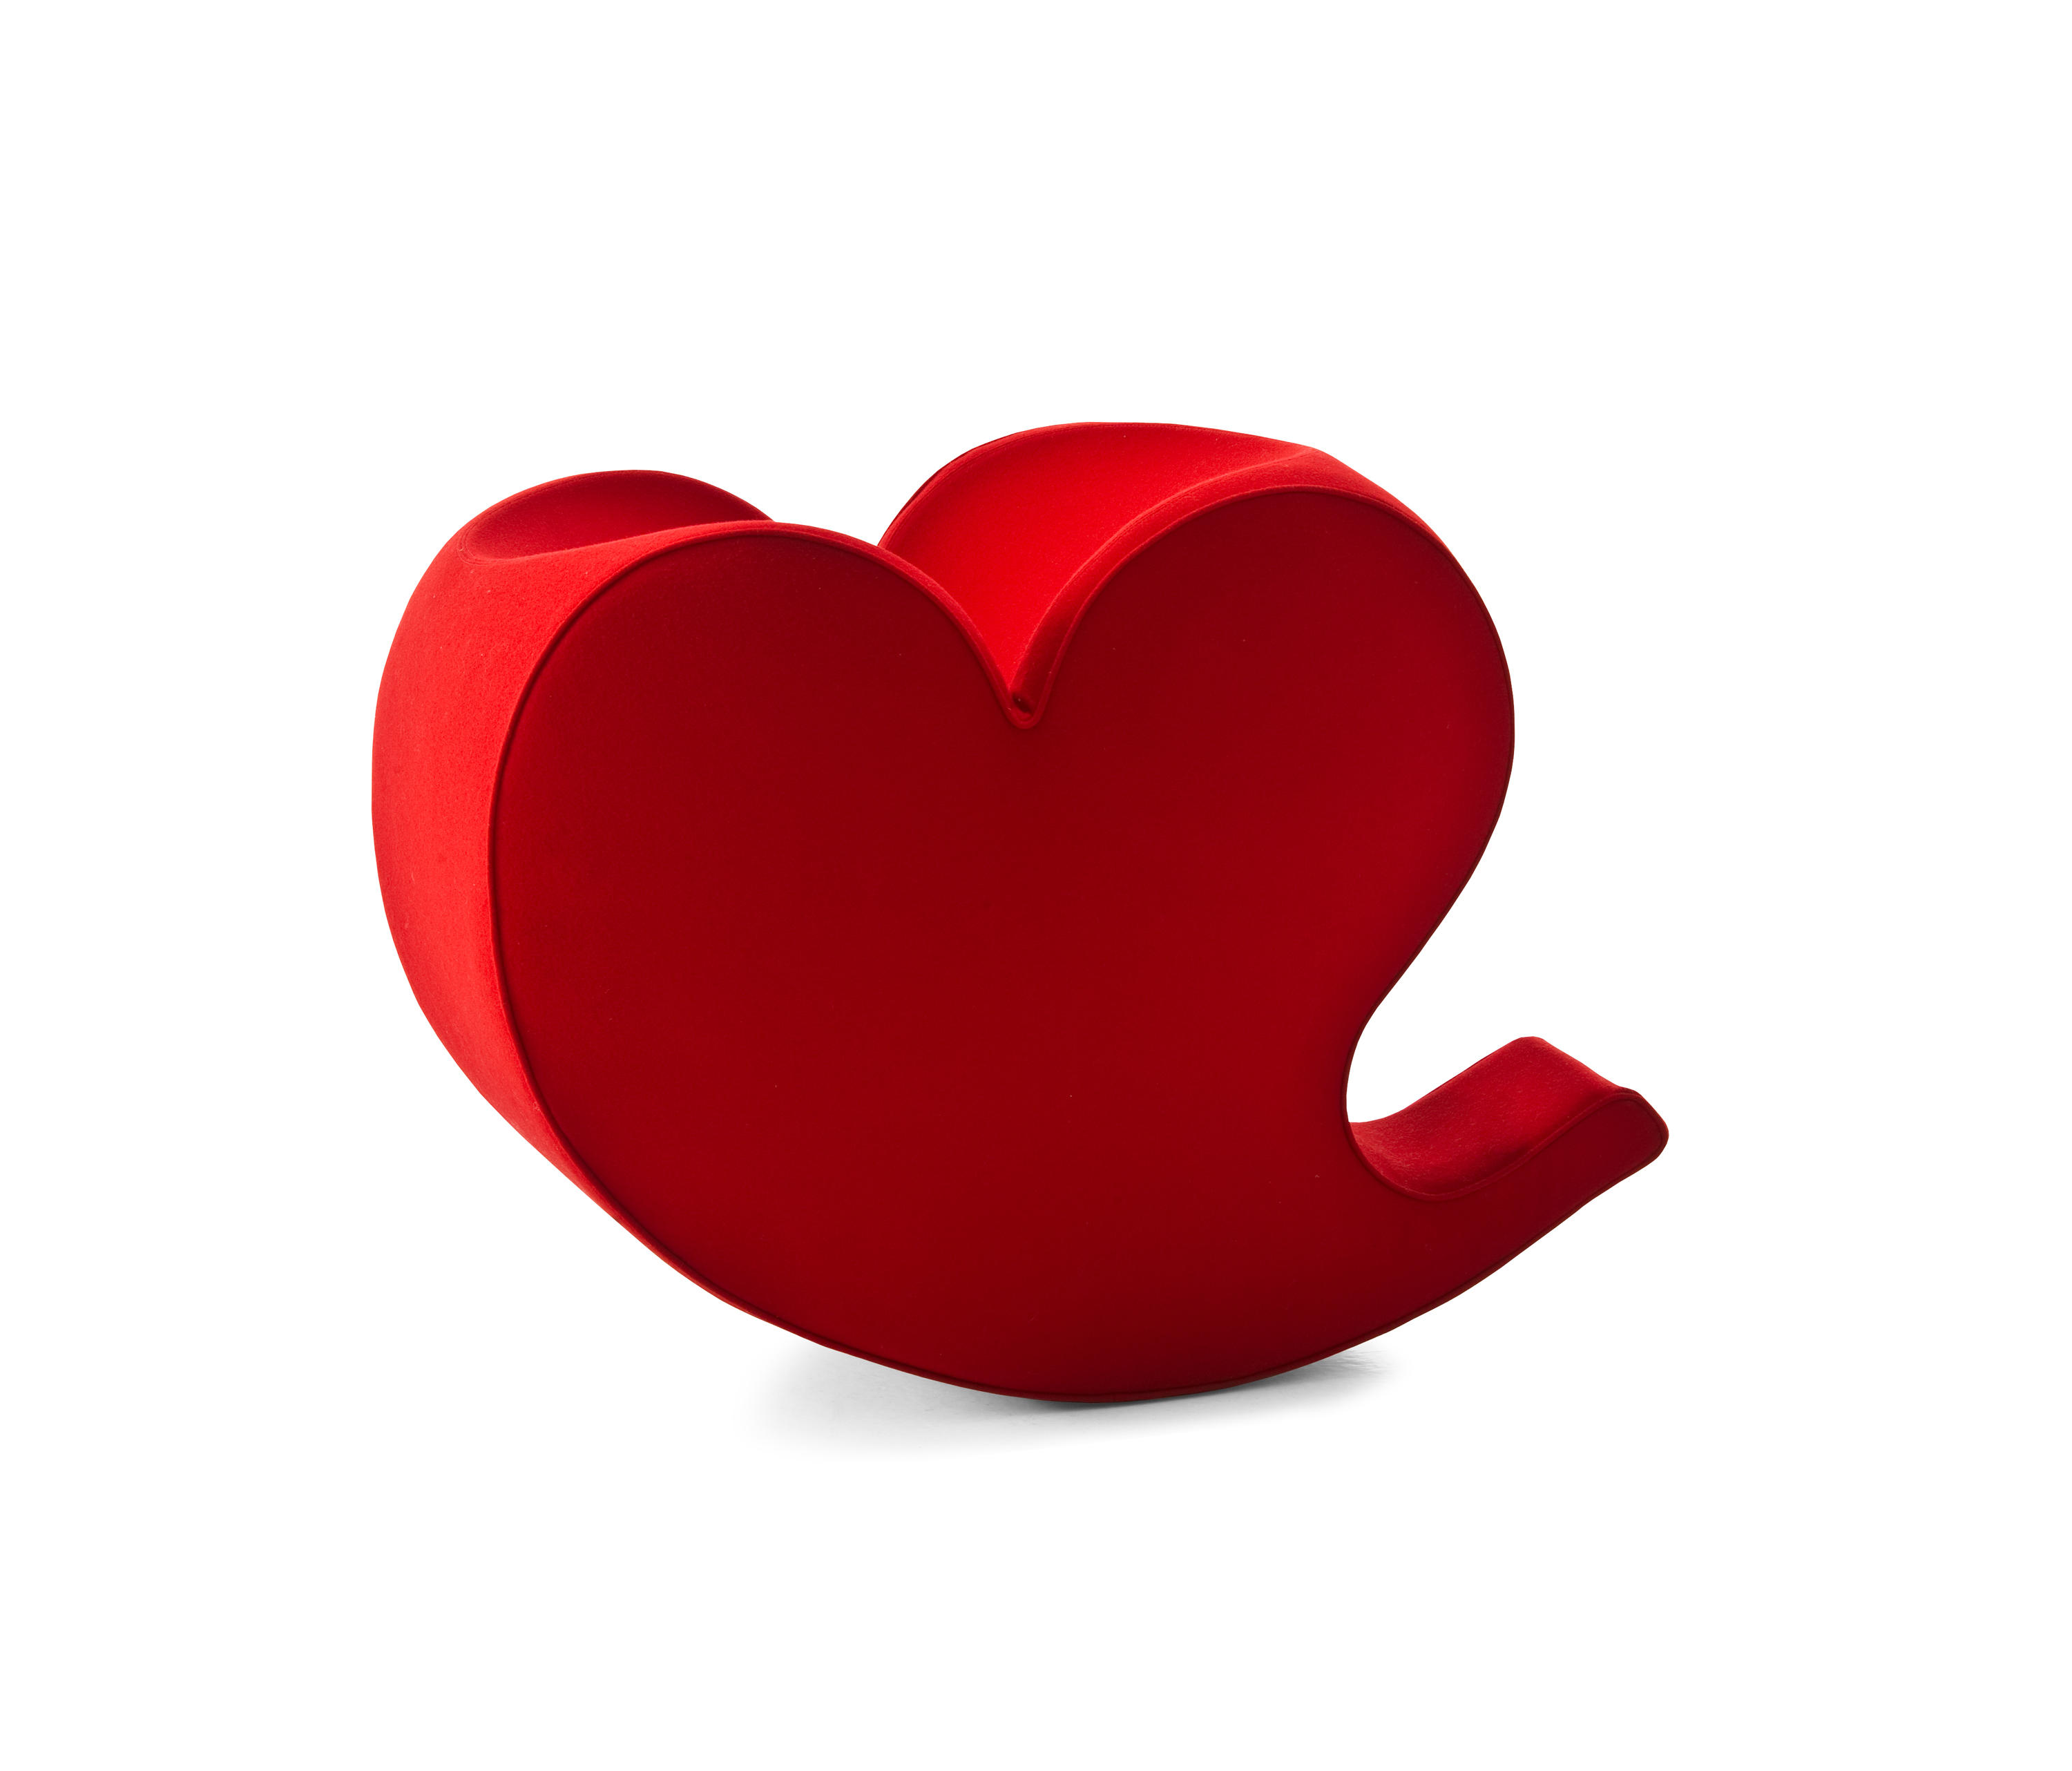 Chair clipart soft chair. Heart lounge chairs from